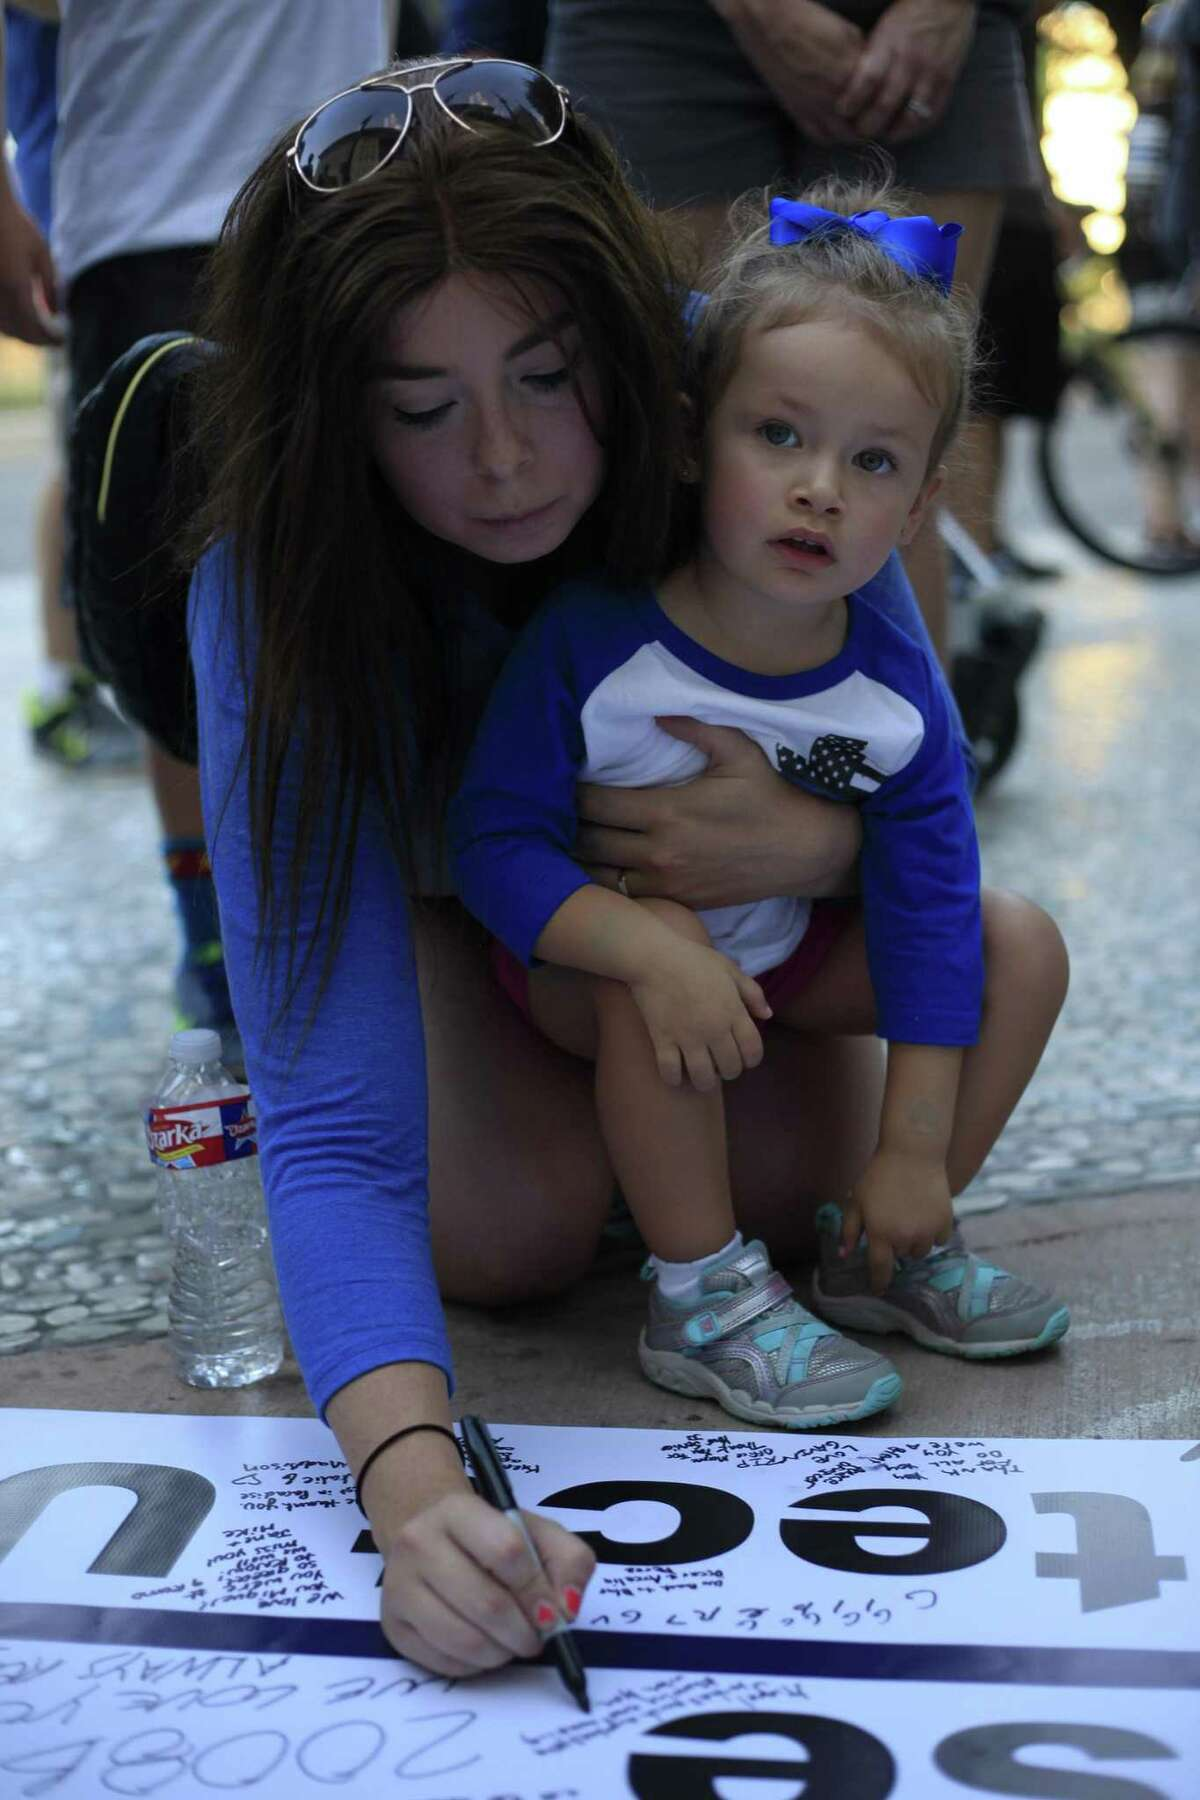 Alexandria Rosales and daughter Olivia sign the banner for fallen officer Miguel Moreno at the Public Safety Headquarters on July 5, 2017.